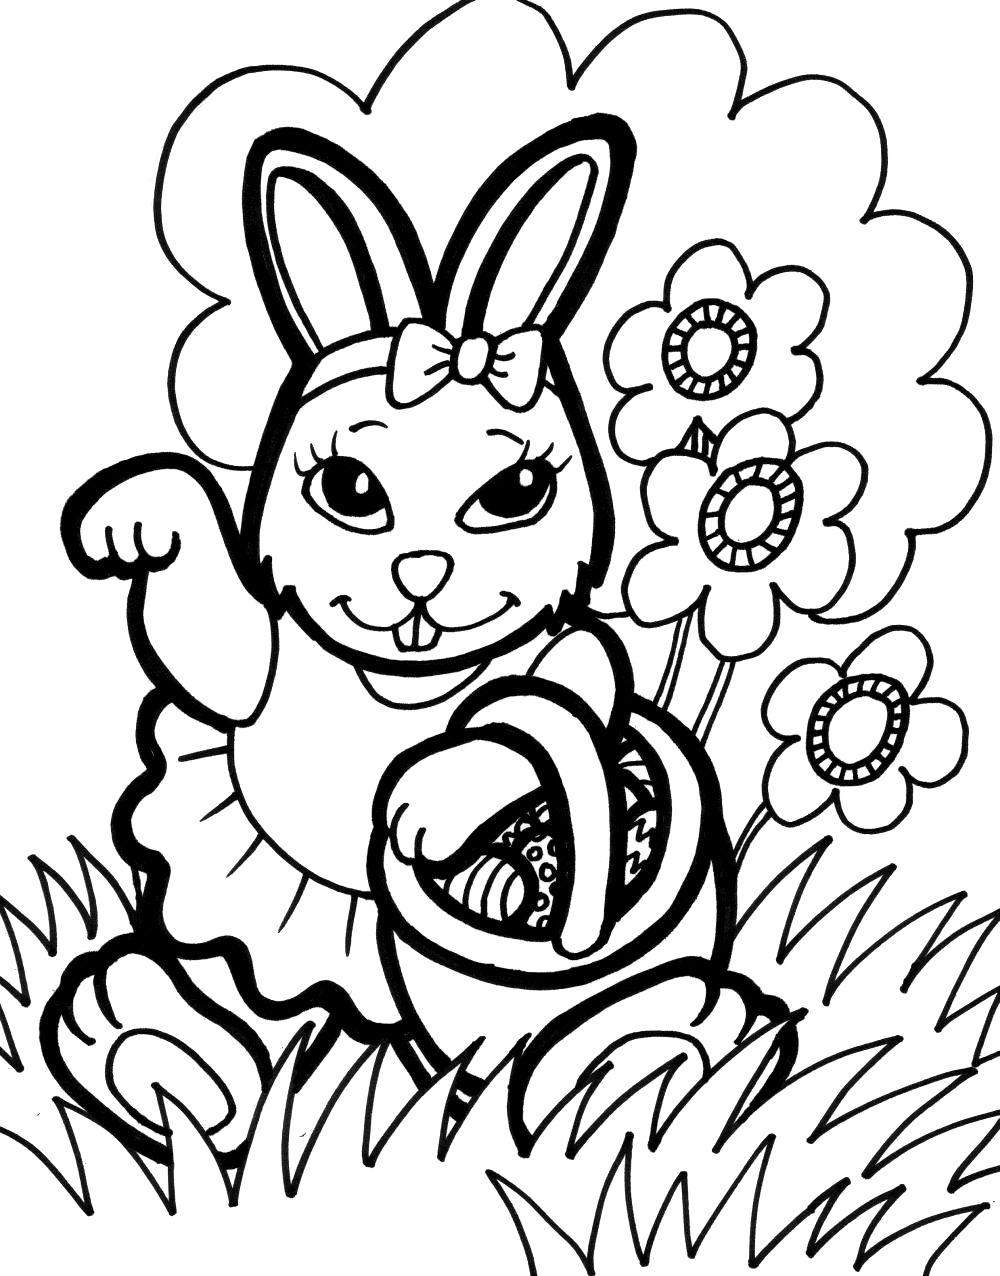 childrens colouring pictures printable coloring pages coloring kids colouring childrens pictures